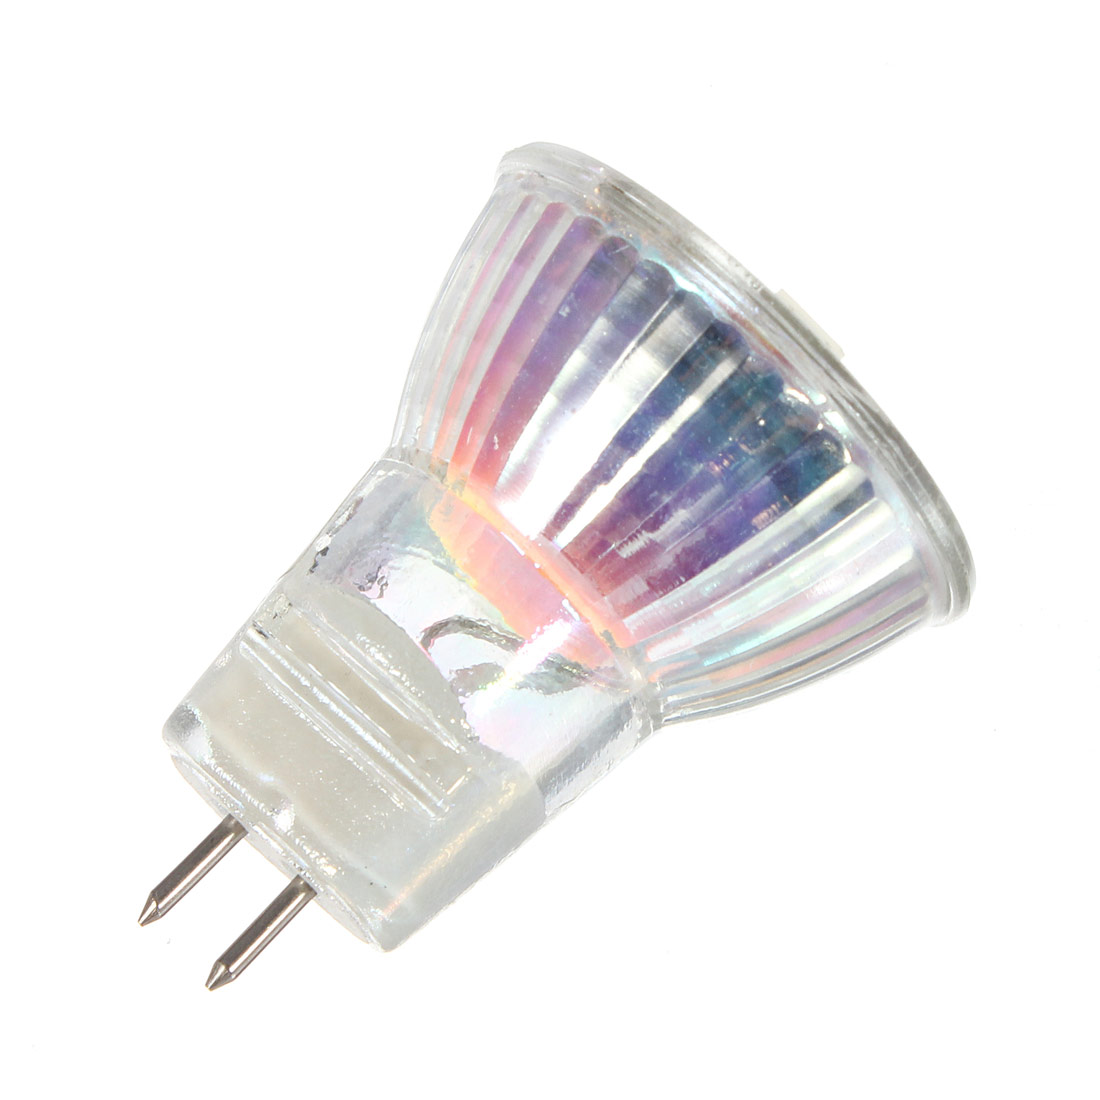 Led Spotlight Light Bulbs: MR11 4W 15 SMD 5630 LED 420LM Light Energy Saving